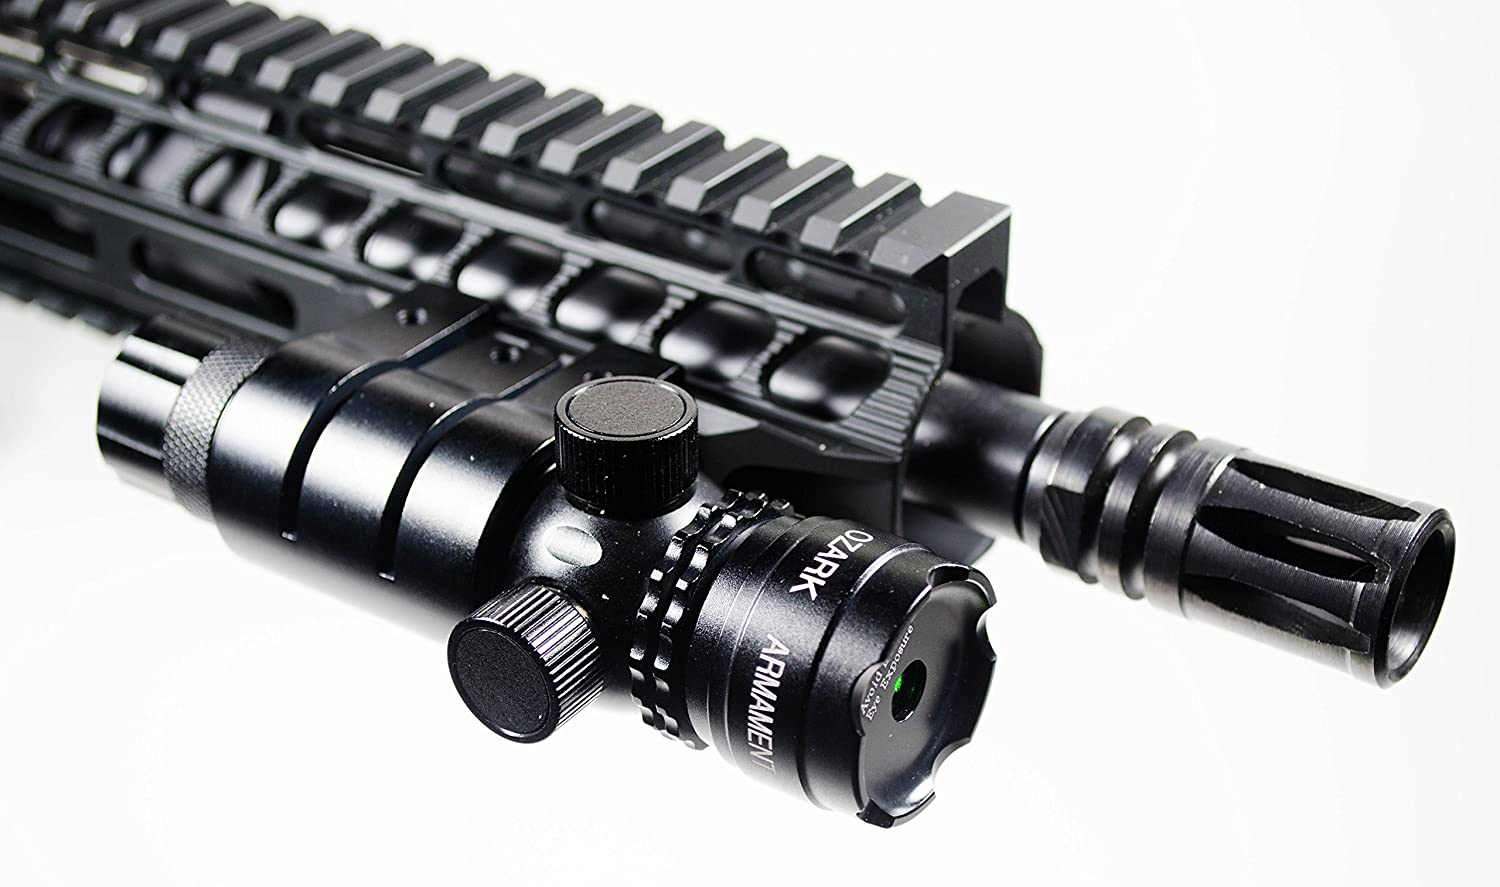 Ozark Armament - 5mw 532nm High Powered Tactical Green Laser